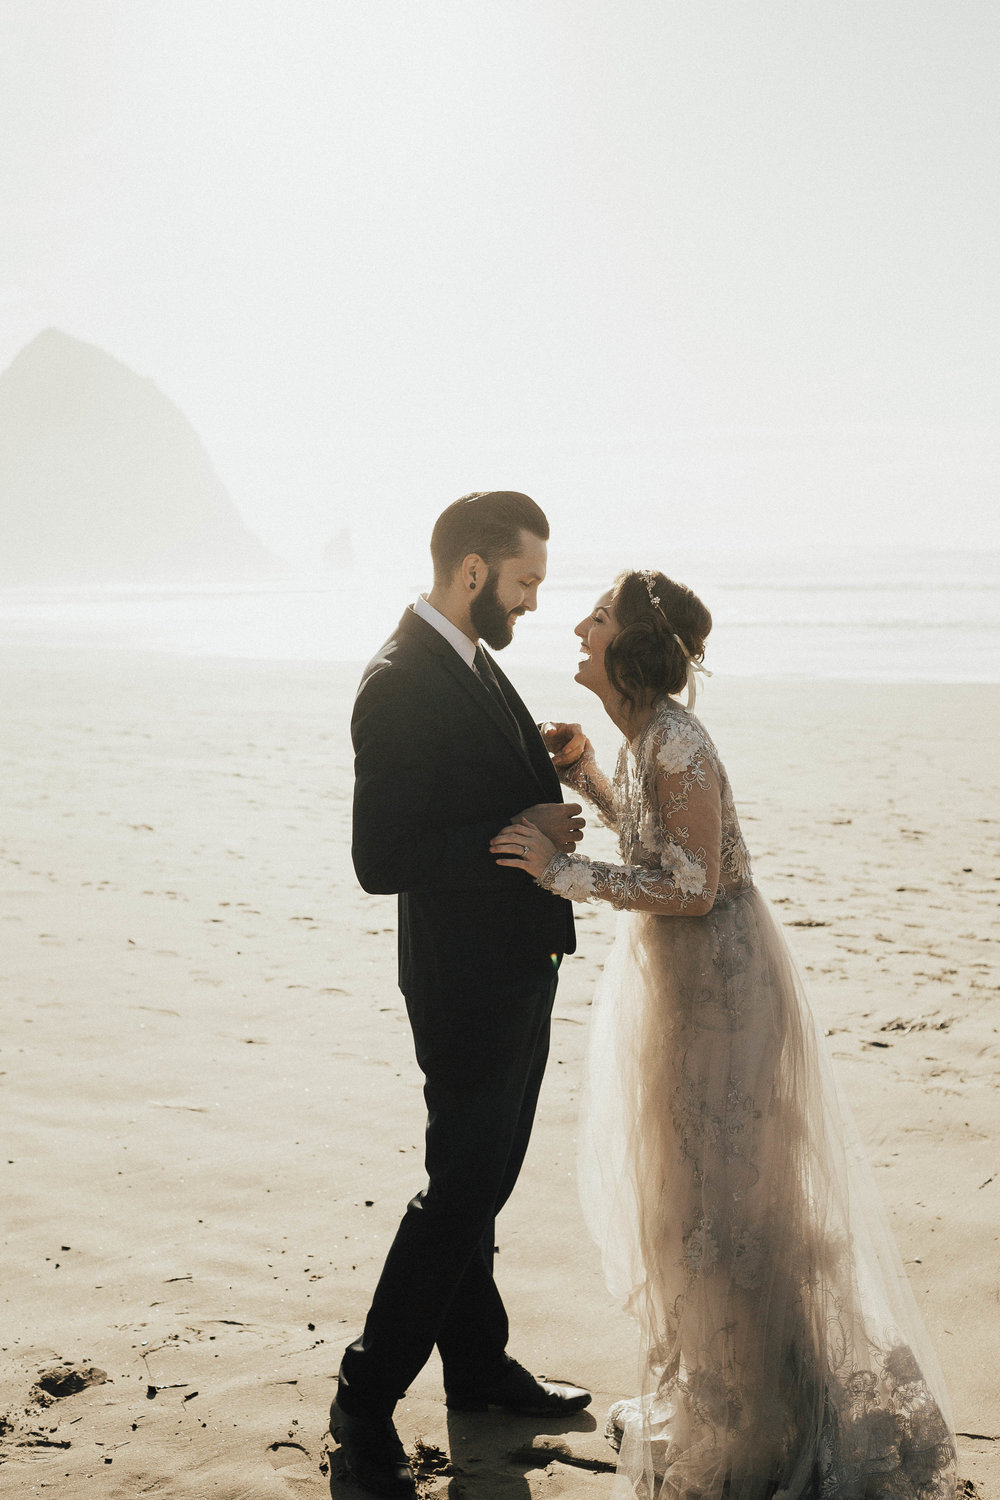 Cannon Beach Elopement - Michelle Larmand Photography - 047